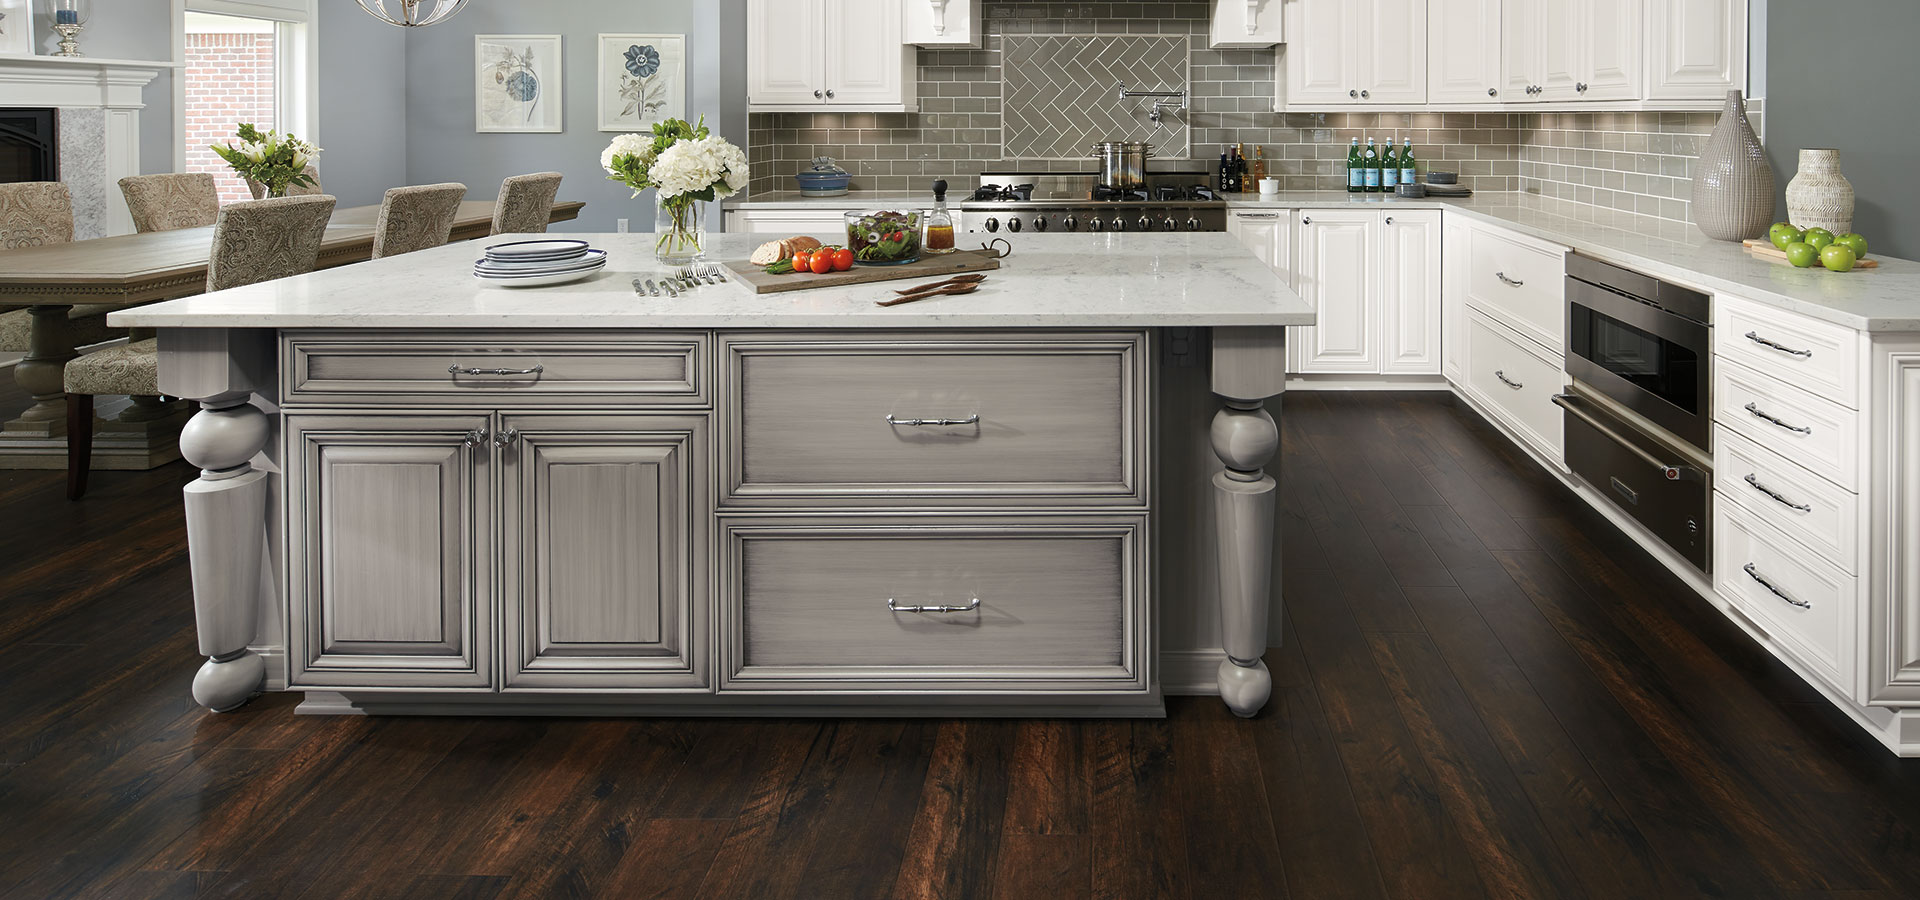 custom cabinets bathroom kitchen cabinetry omega rh omegacabinetry com